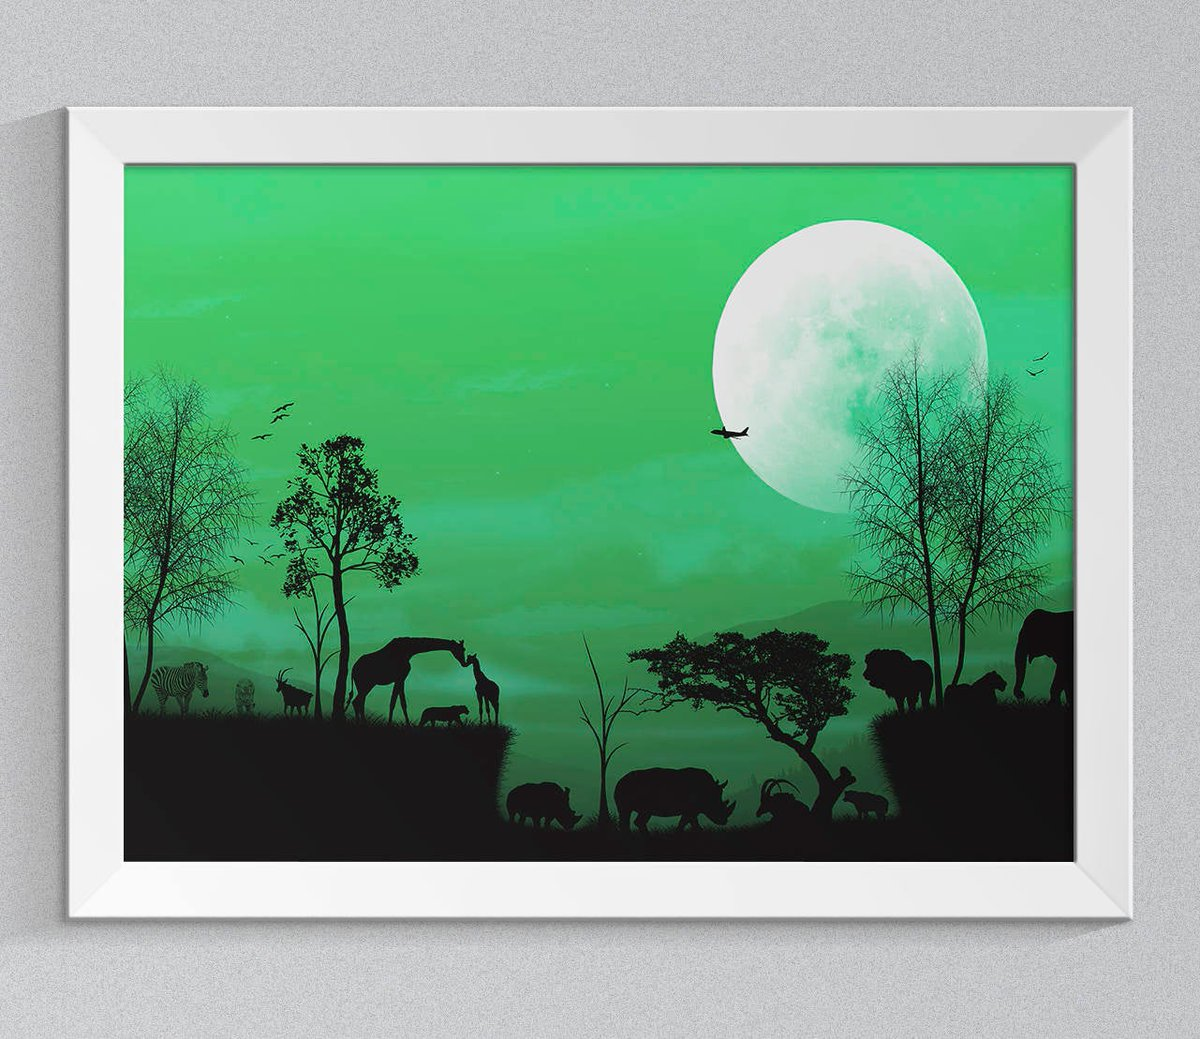 Excited to share the latest addition to my #etsy shop: African digital paper, african backdrop, african safari decor, african landscapes, african animals pictures, african landscape painting https://t.co/MhWm7siLyR #green #moving #christmas #black #art #drawing #africa https://t.co/YVtPSkMzB5